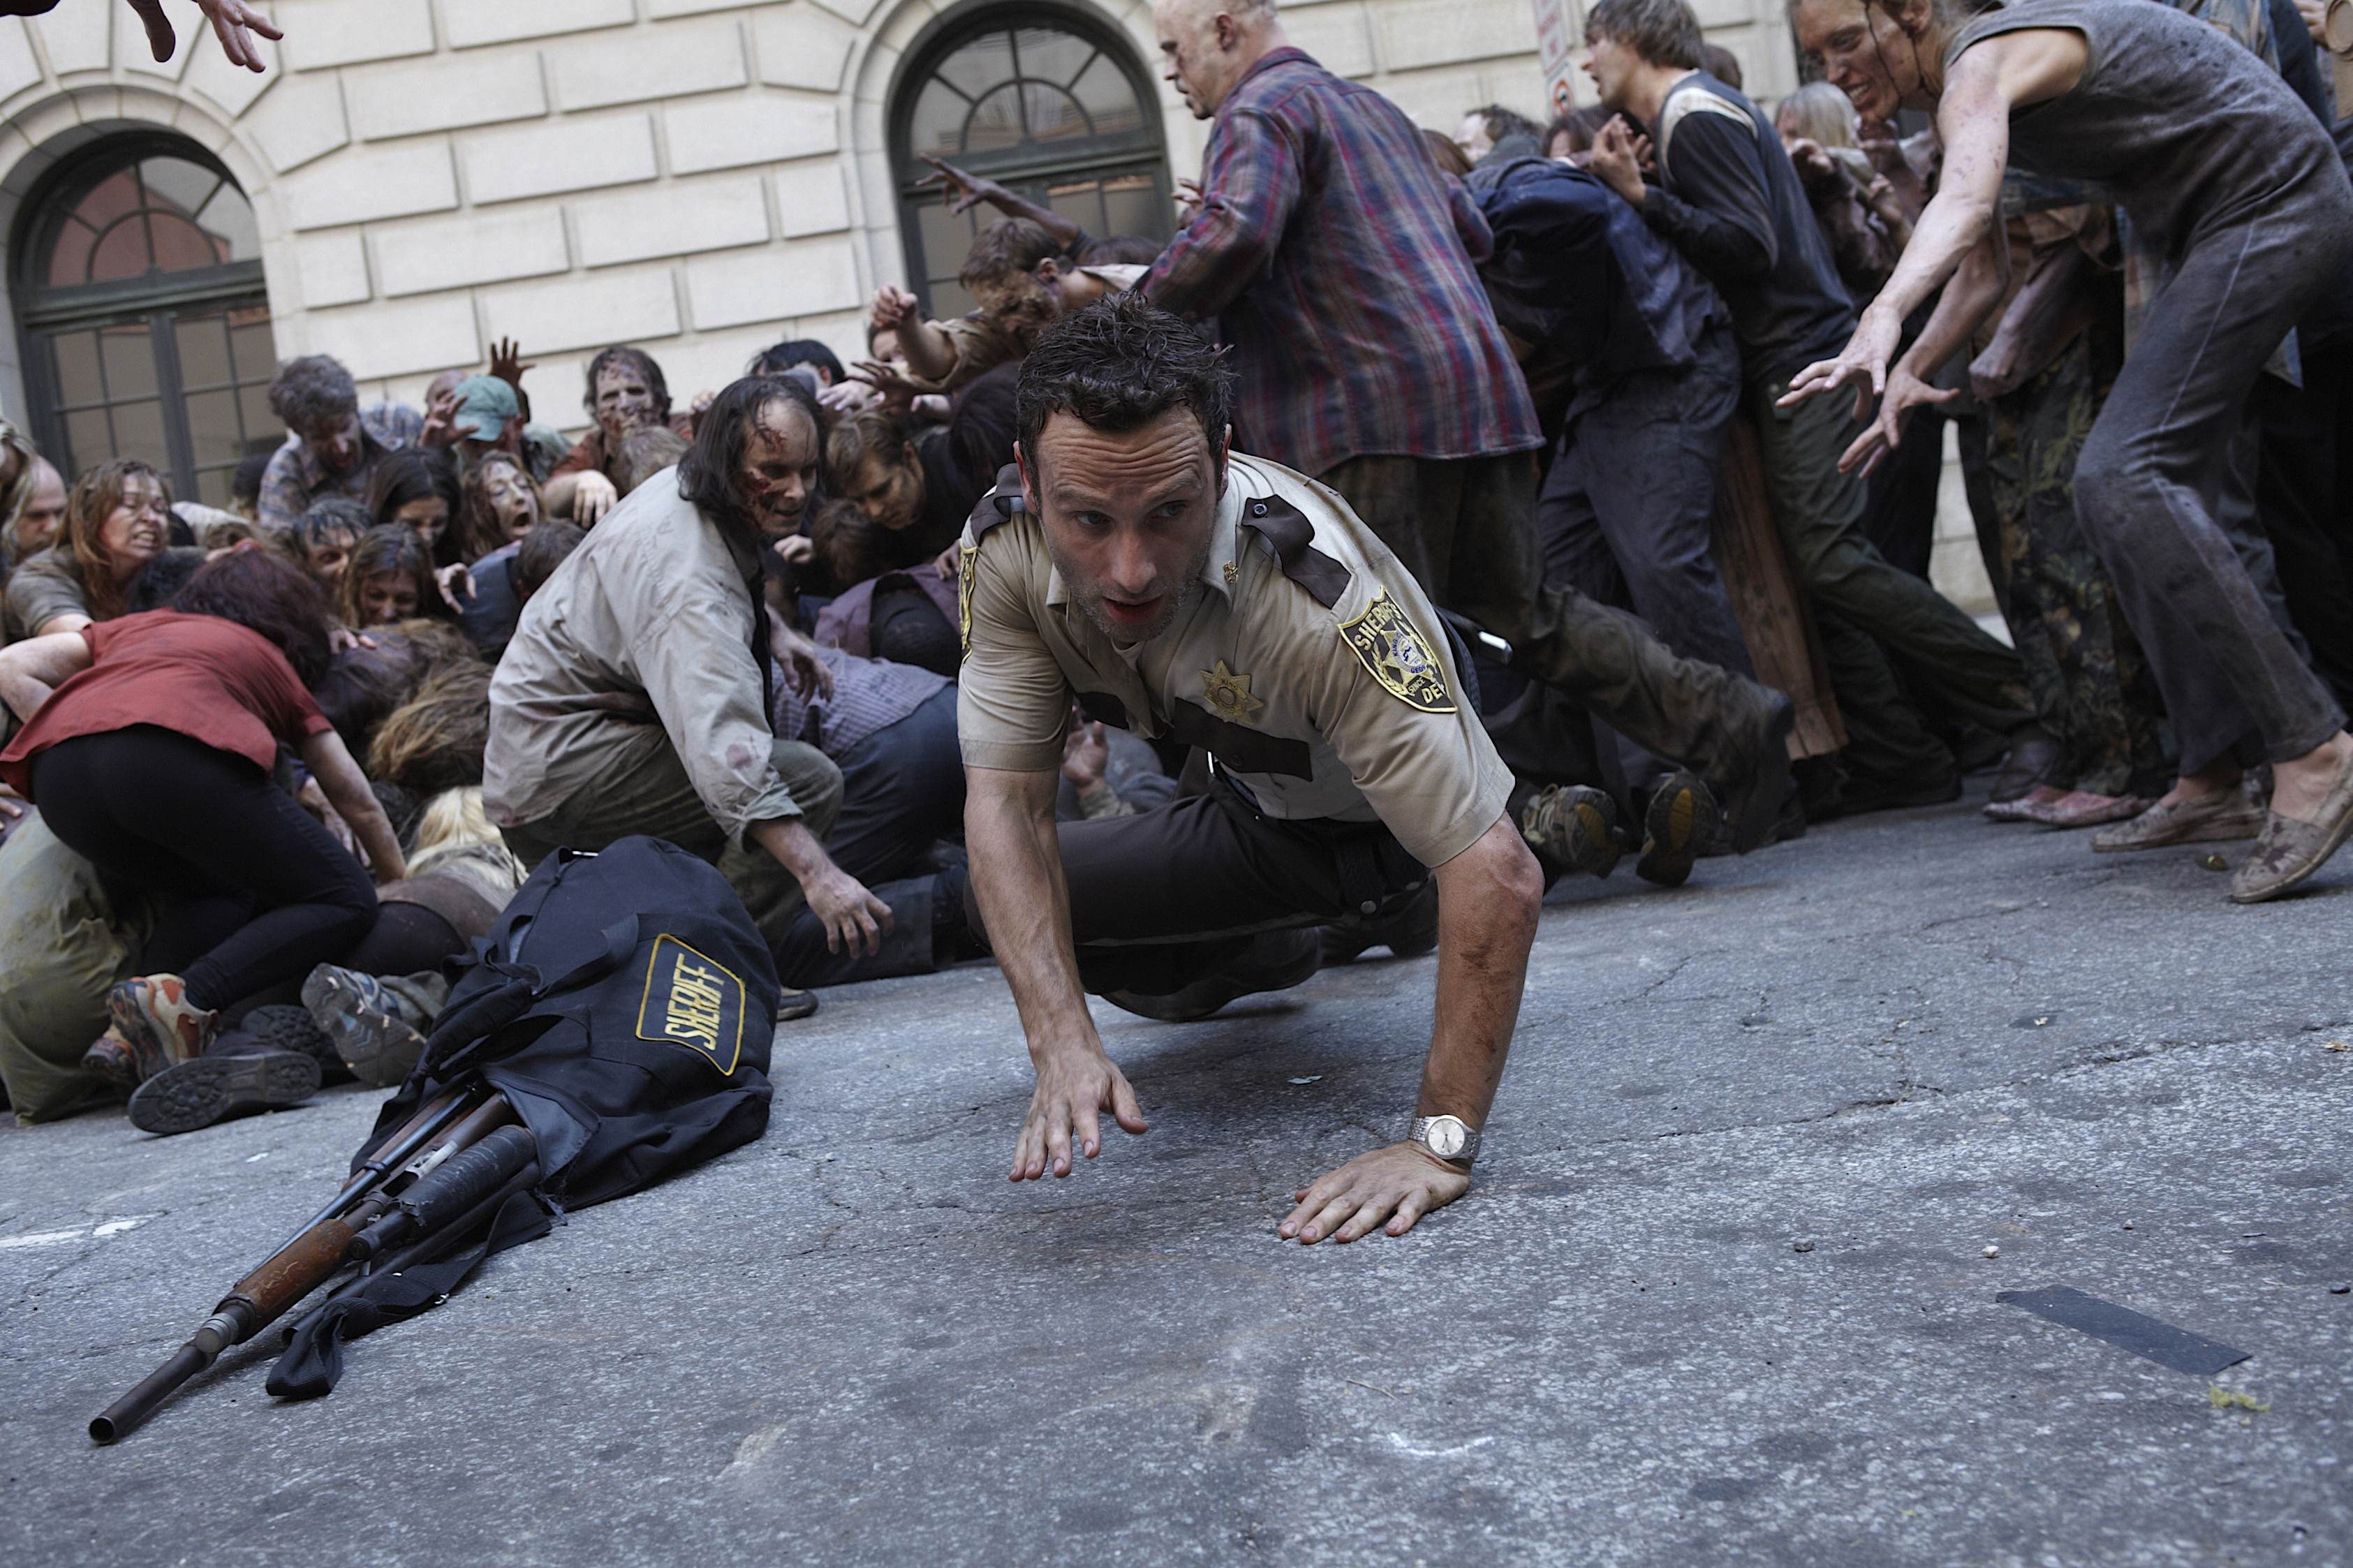 the walking dead is not universally praised for the content